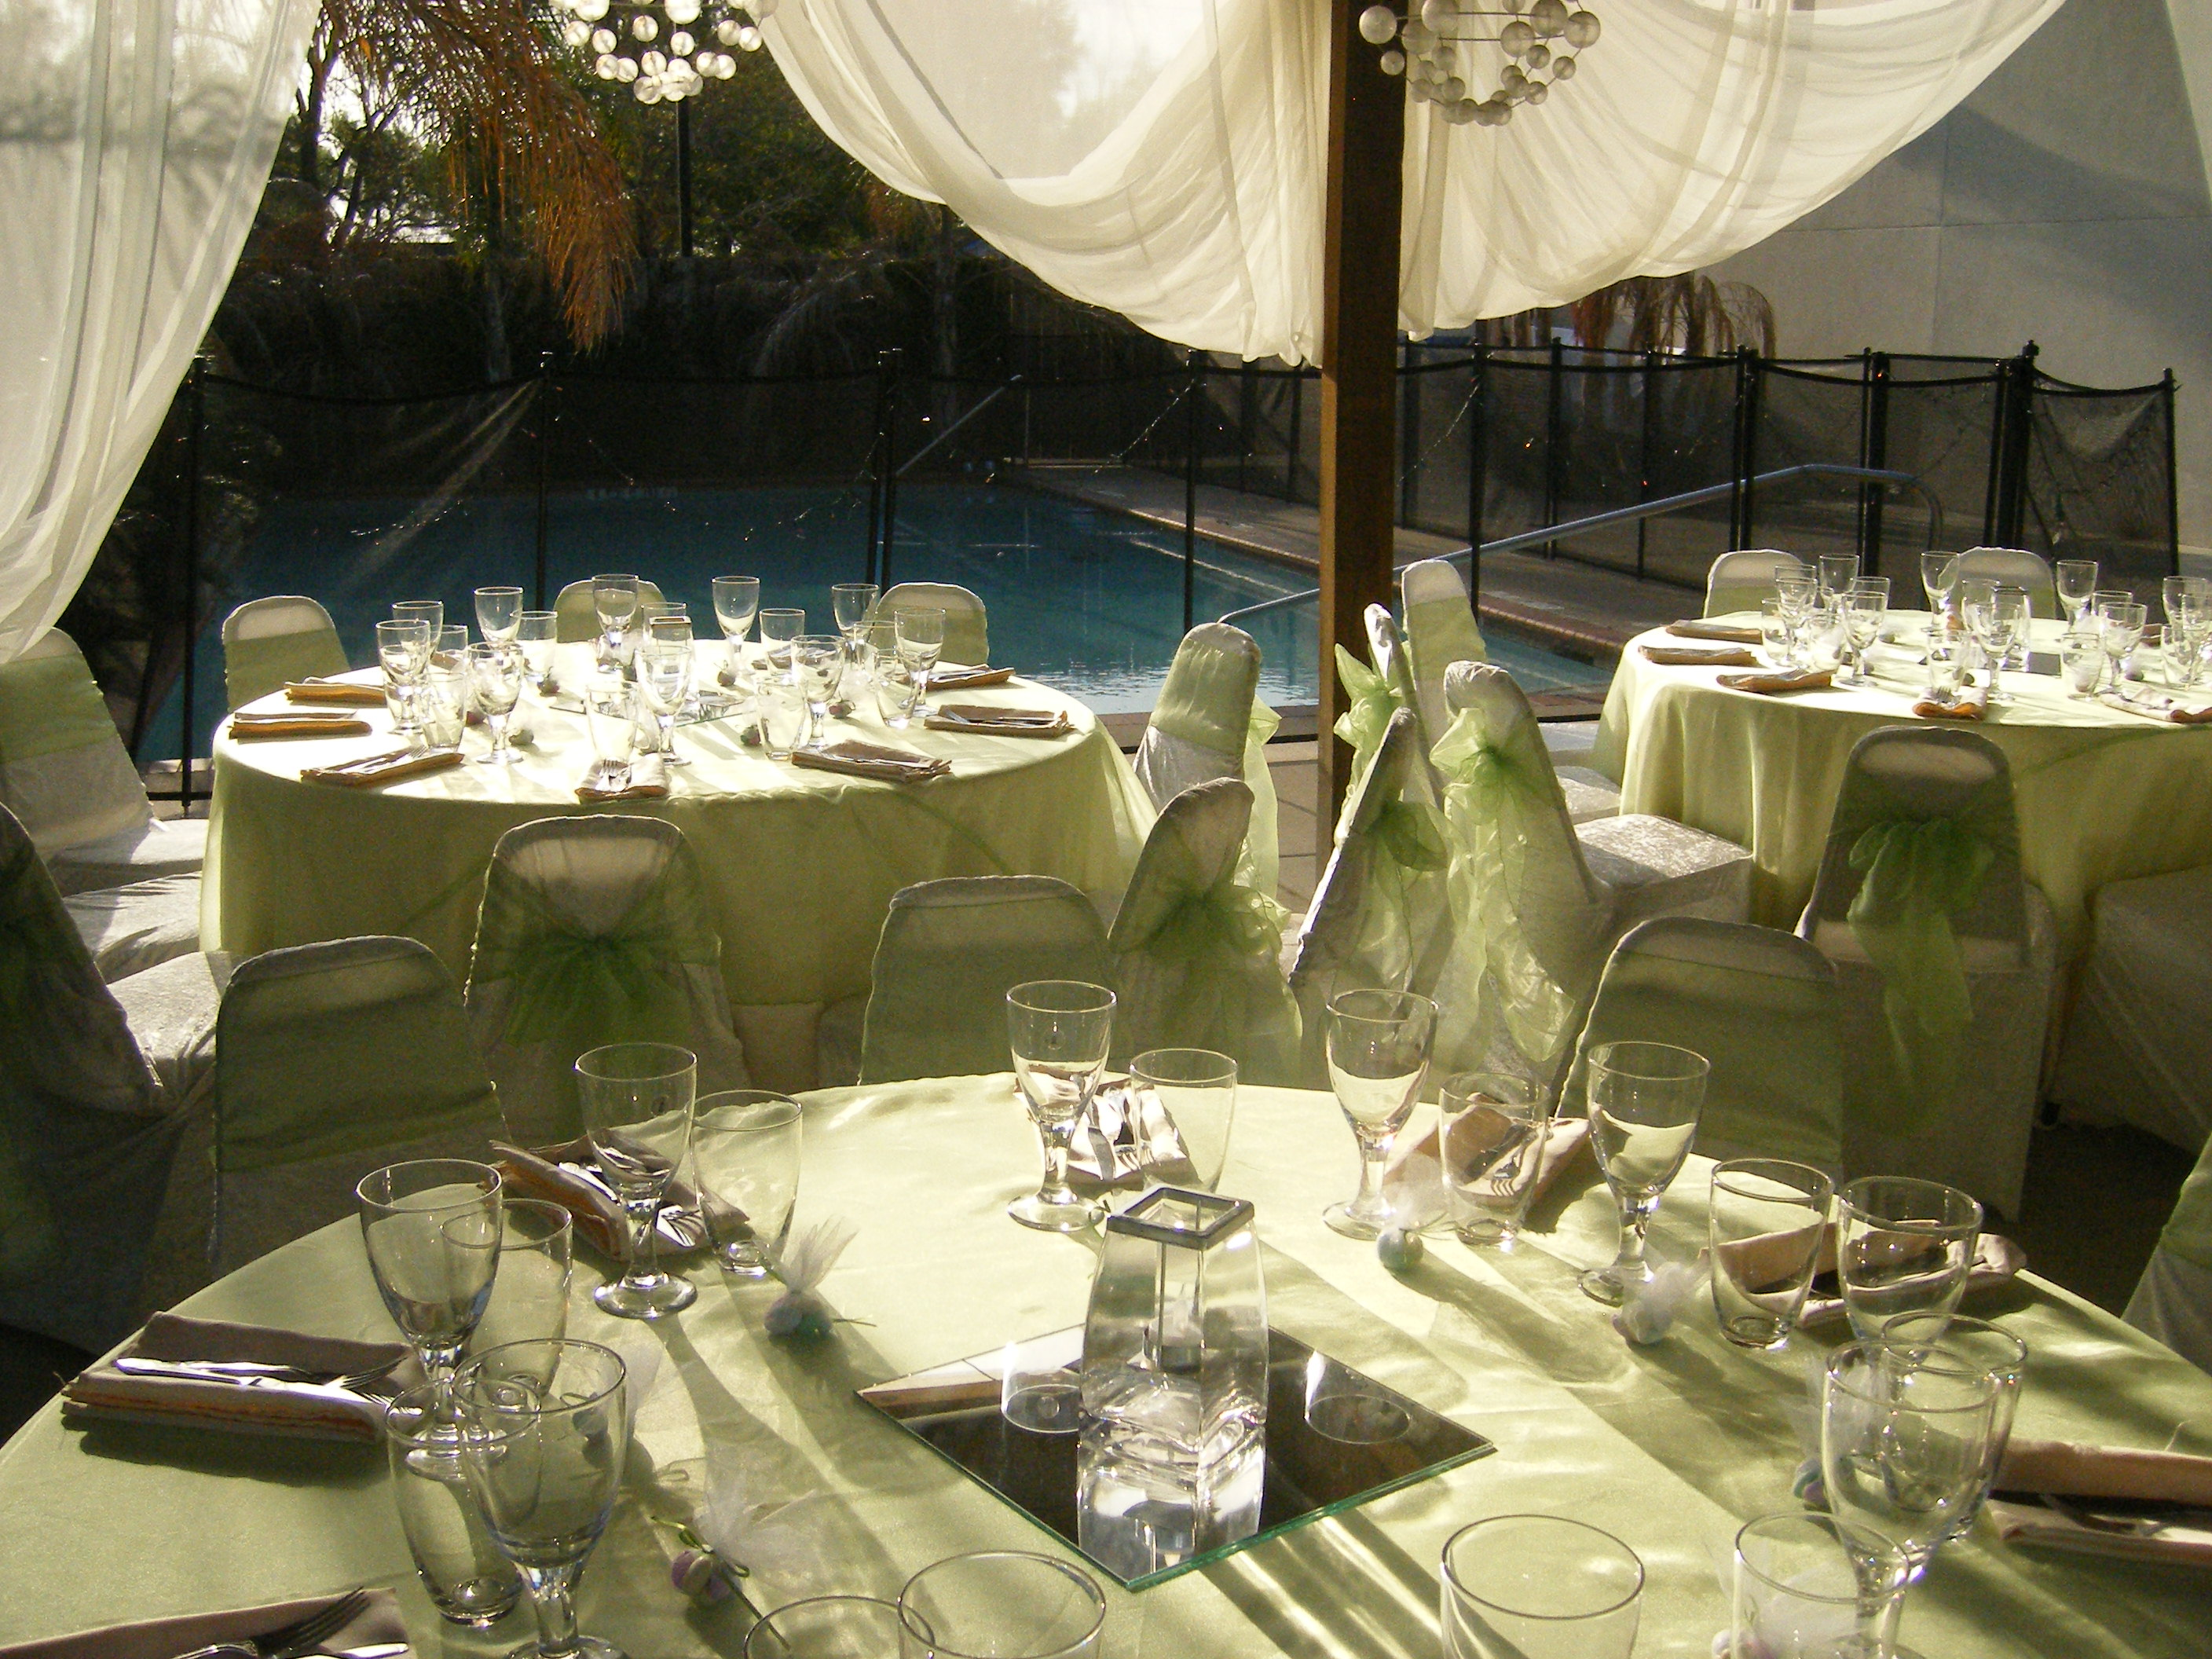 outdoor lime green babyshower by the pool demers banquet hall